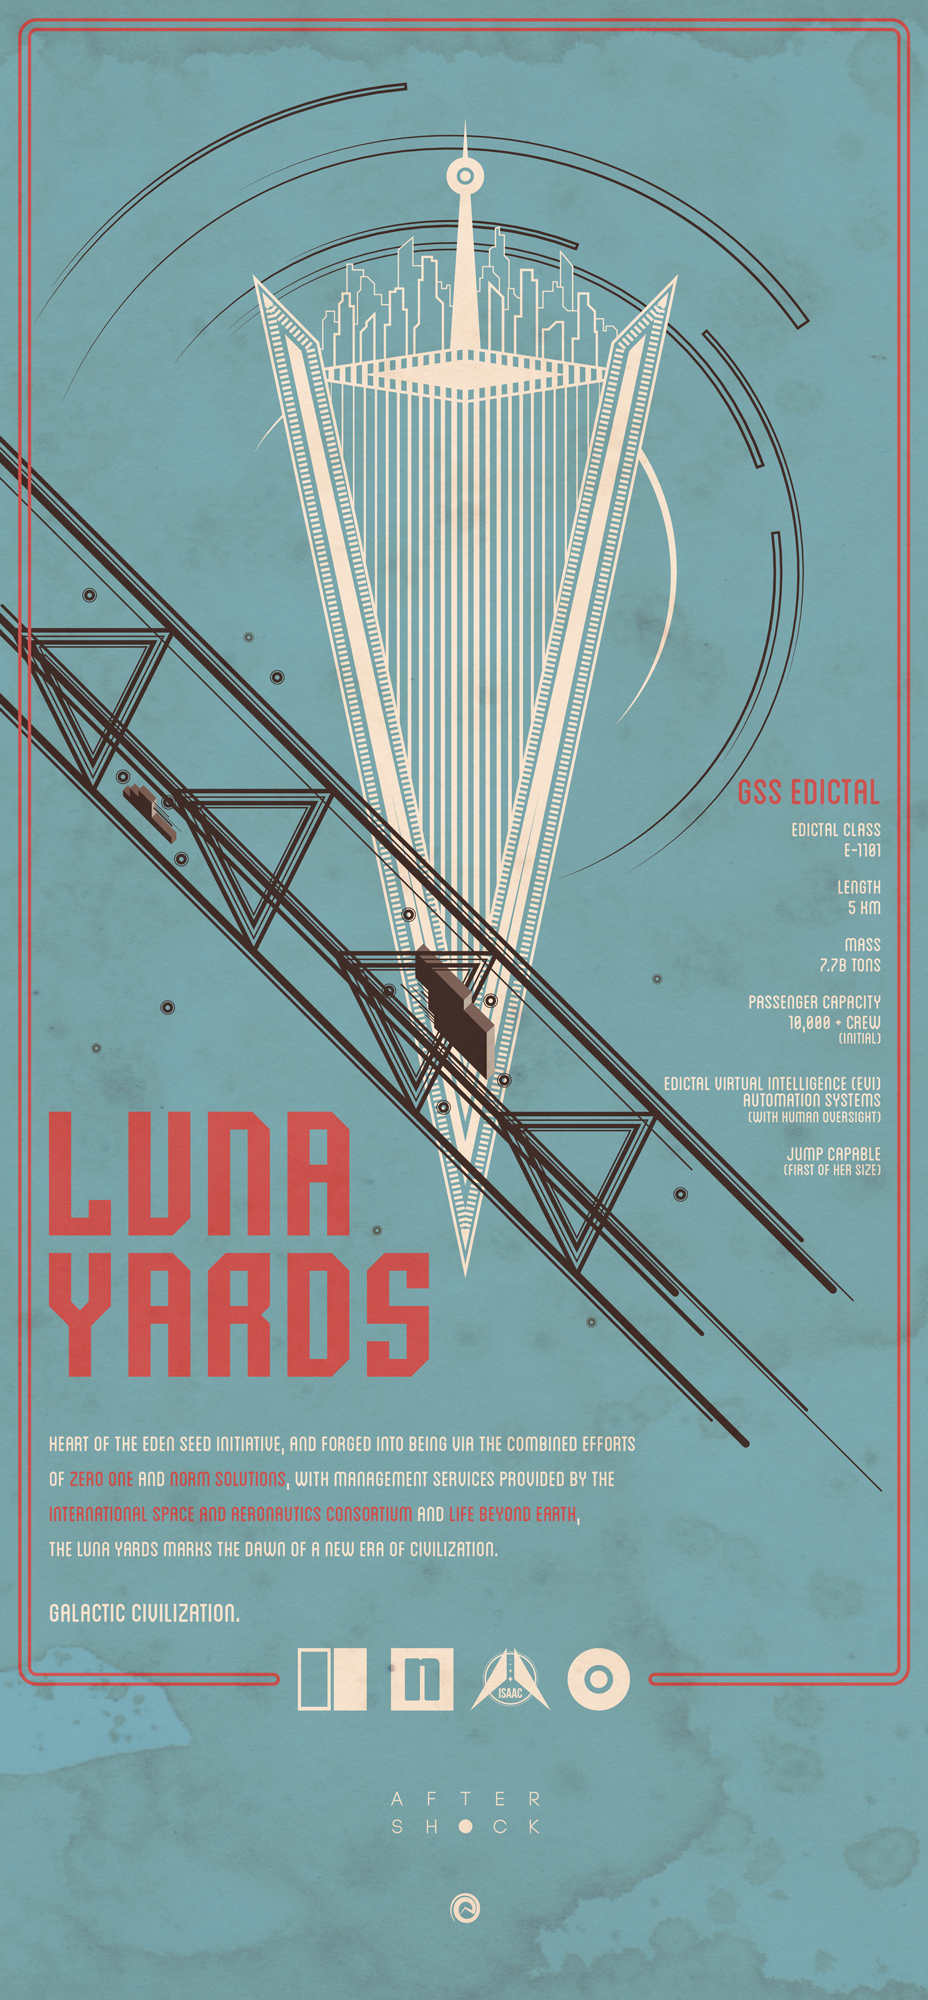 LUNA-YARDS-5BIG-S.png